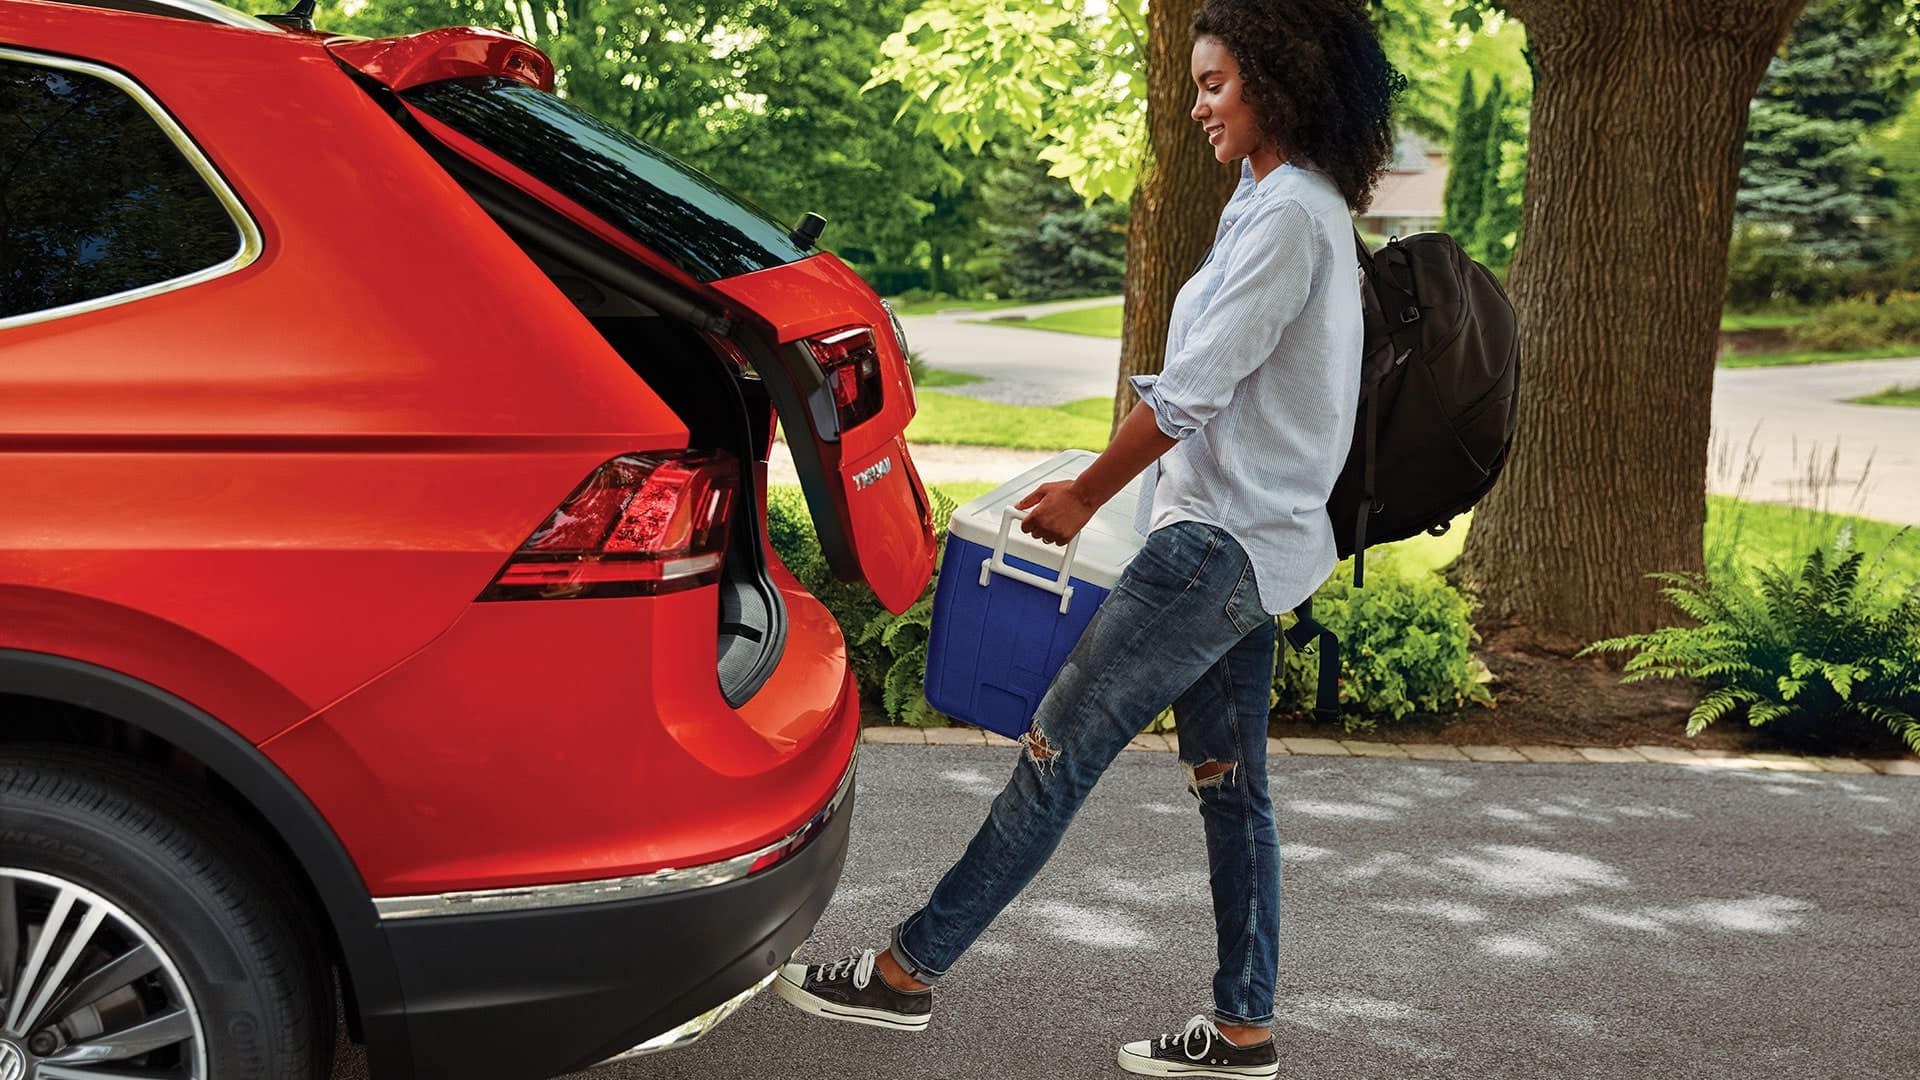 Woman with her hands full takes advantage fo the Tiguan's power liftgate by simply waving her foot under the rear bumper to open the rear door.